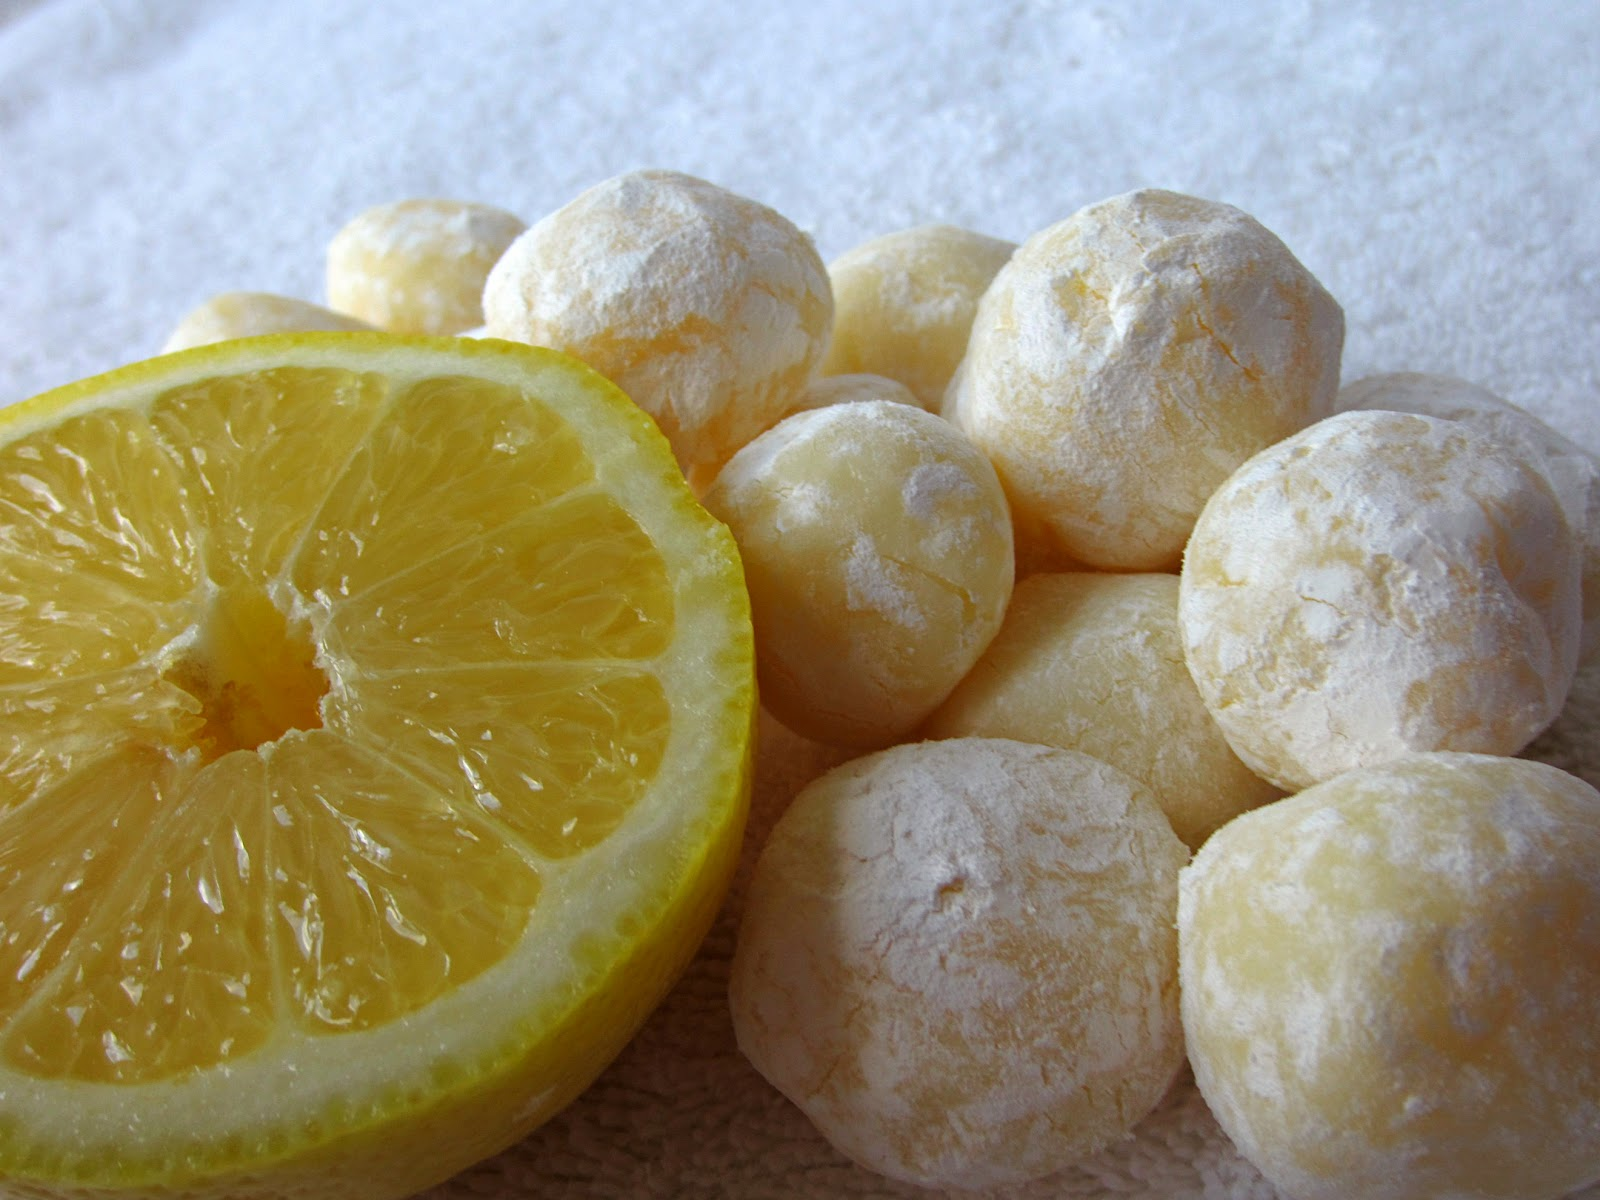 Sugarcoated white chocolate lemon truffles for White chocolate truffles recipe uk